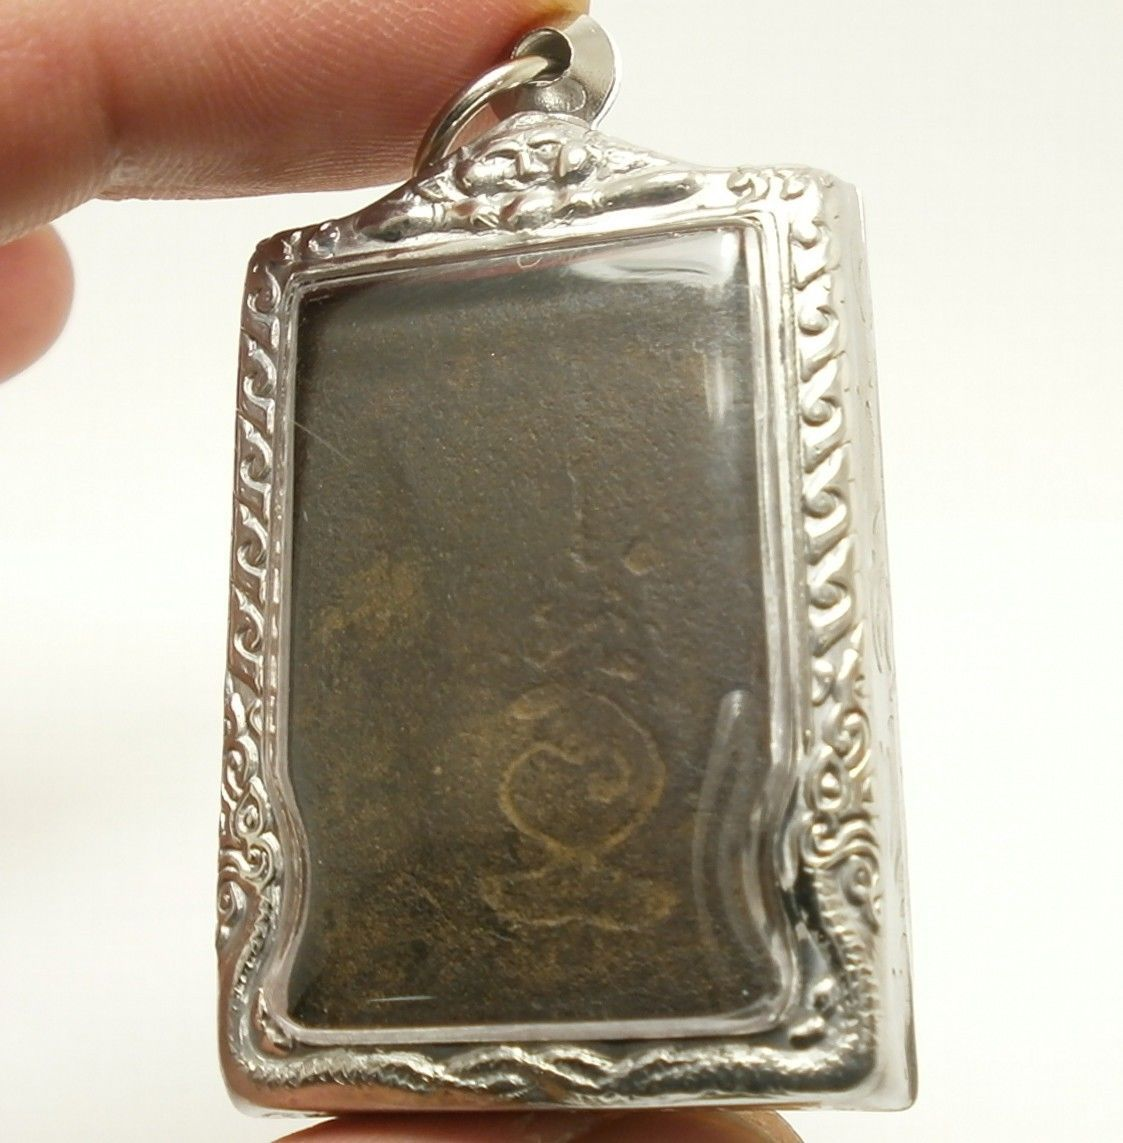 LP BOON BUDDHA IN SACRED TEMPLE THAI PEACEFUL HAPPY LUCKY SUCCESS AMULET PENDANT image 4